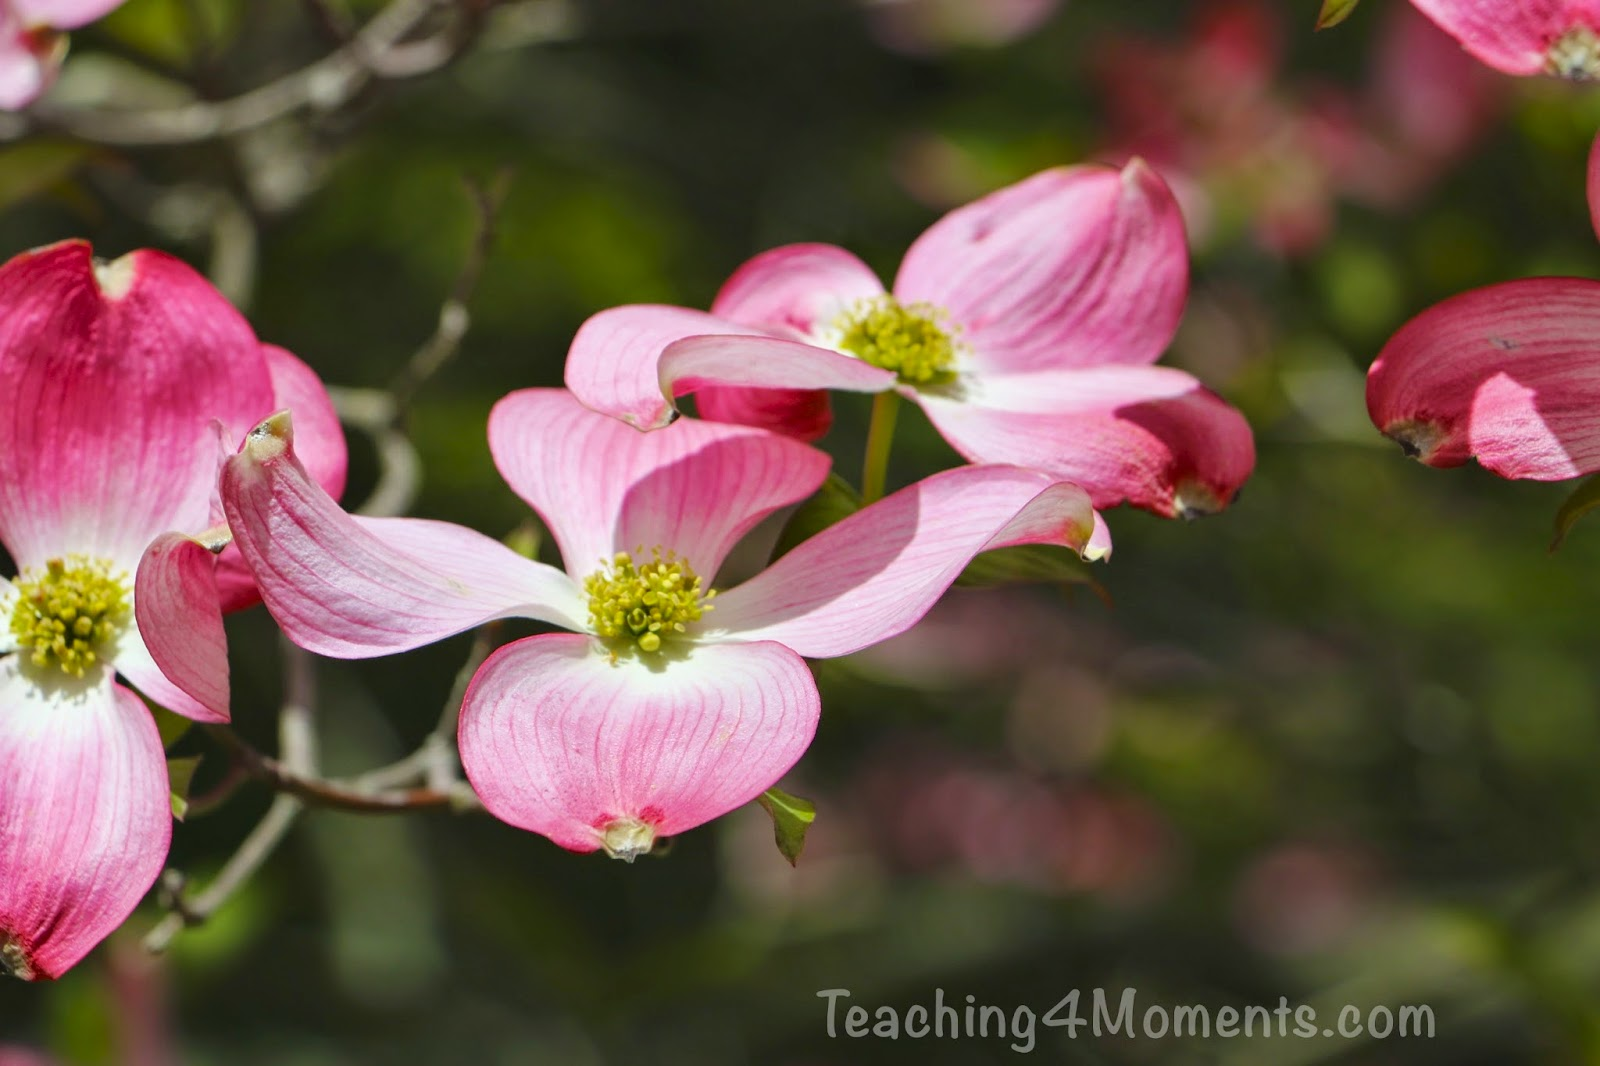 Teaching 4 Moments-Flowering Pink Dogwood